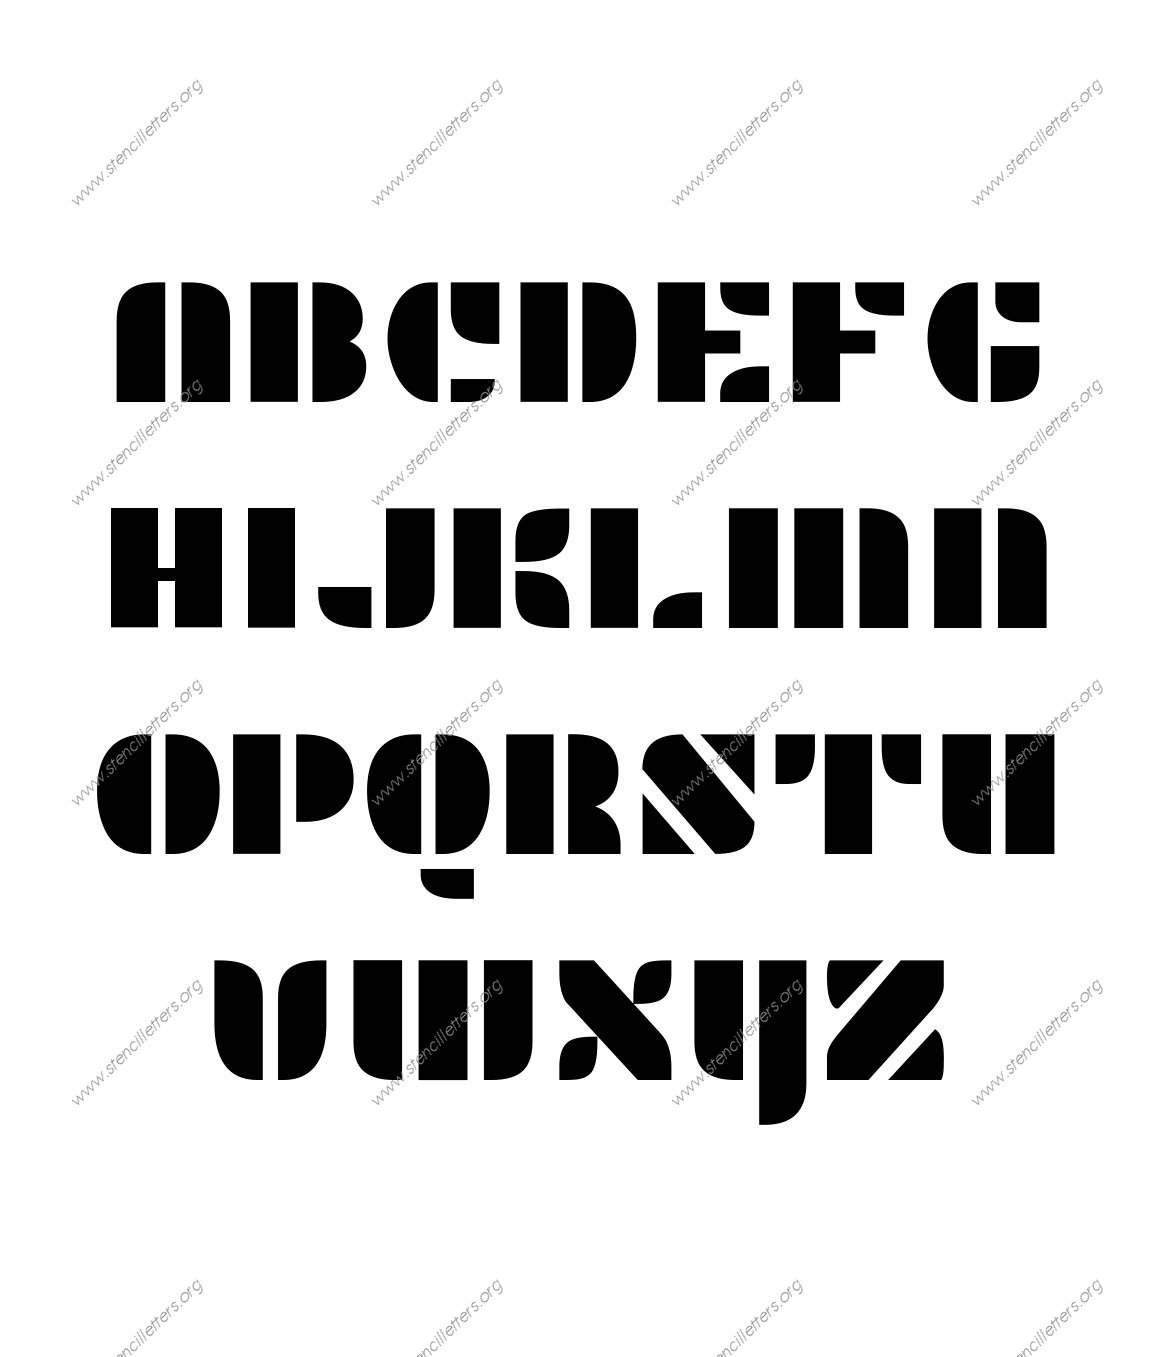 Display Decorative A to Z uppercase letter stencils